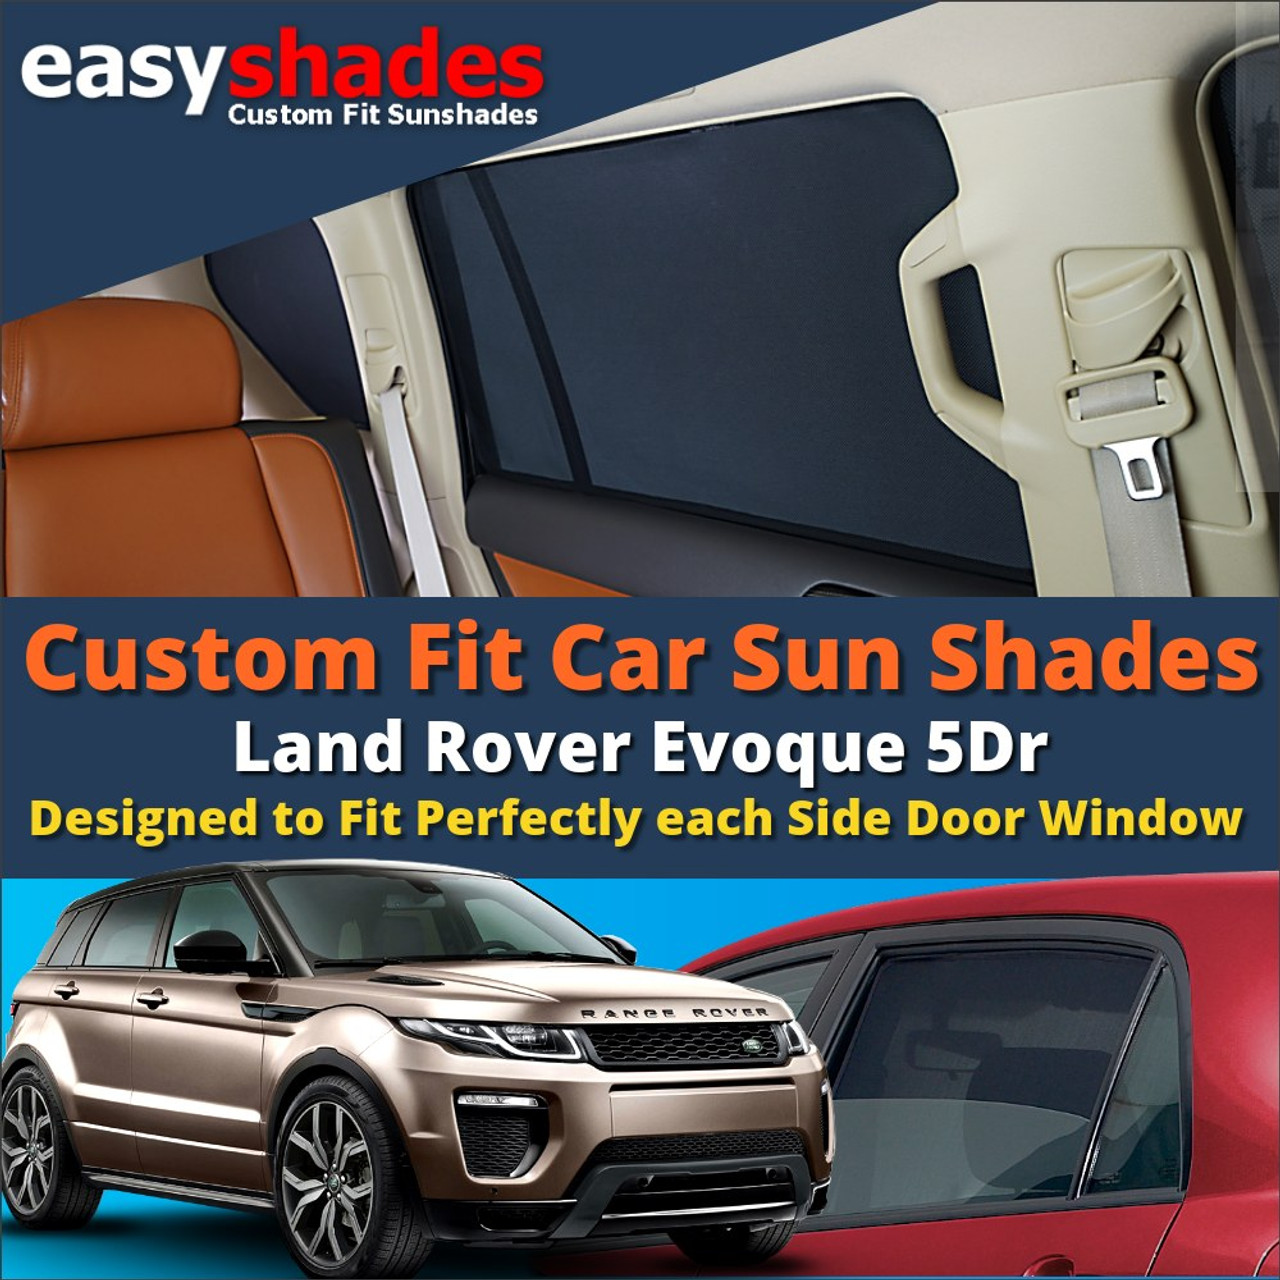 Land Rover Evoque Car Sun Shades from easyshades give great UV Protection  with Window Shades and 60330415dd7